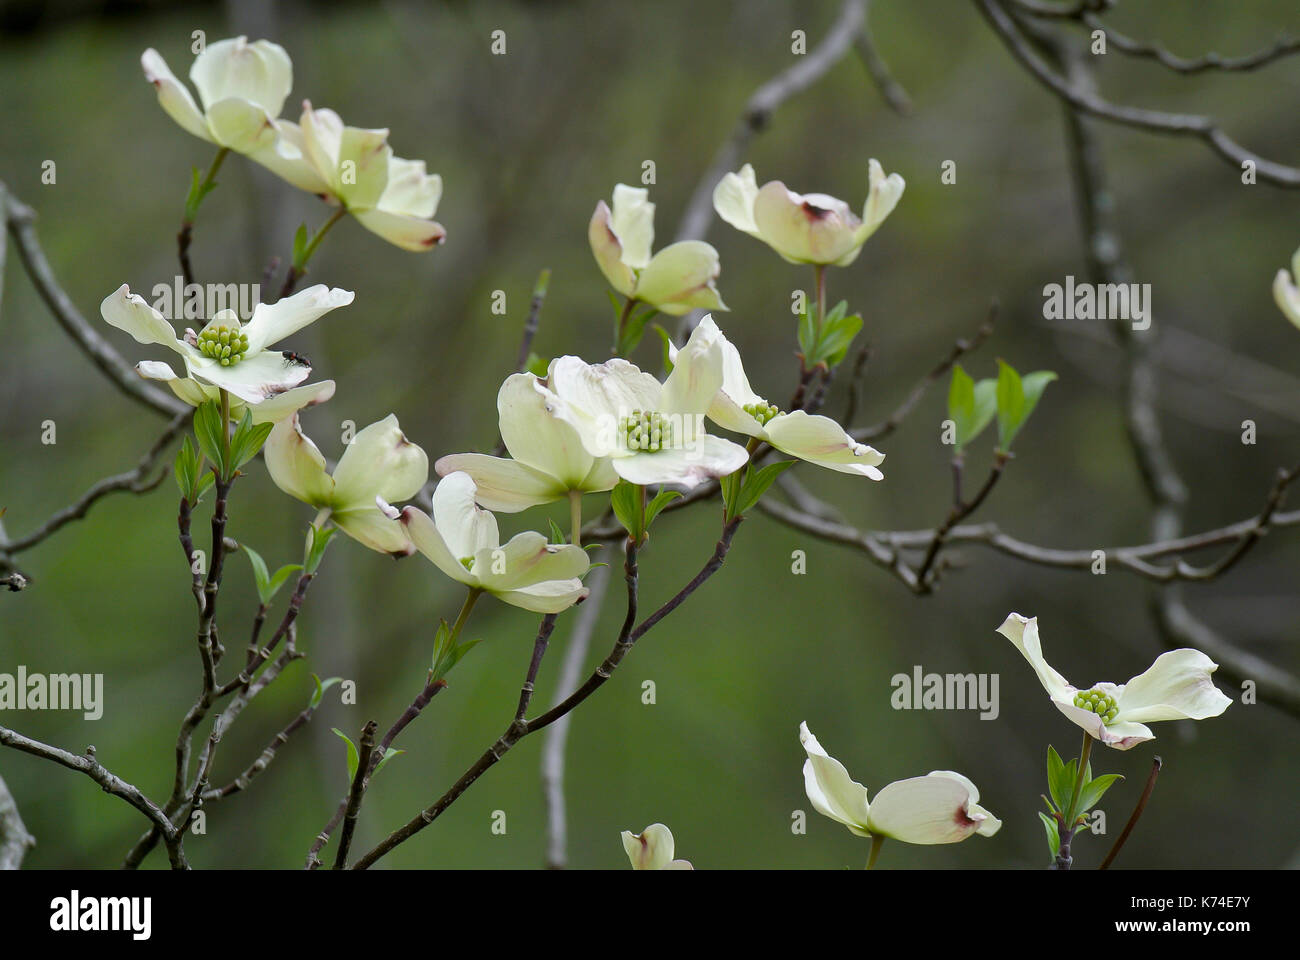 Flowering Dogwood Tree Stock Photos & Flowering Dogwood Tree Stock ...